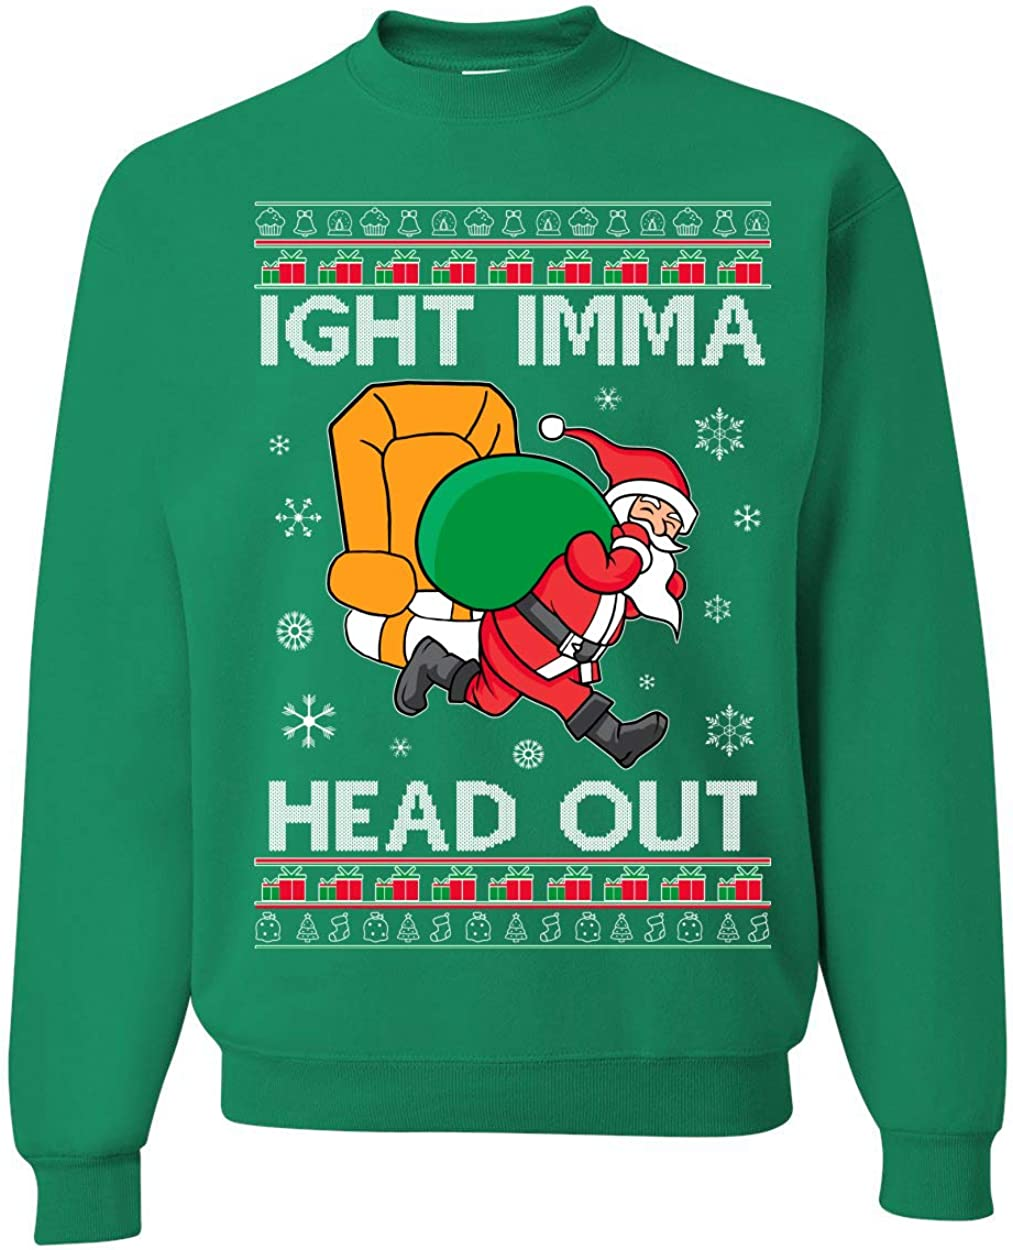 Ight Save money Imma Head Out Funny Santa Max 59% OFF Ugly Meme Christmas Xmas Sweater